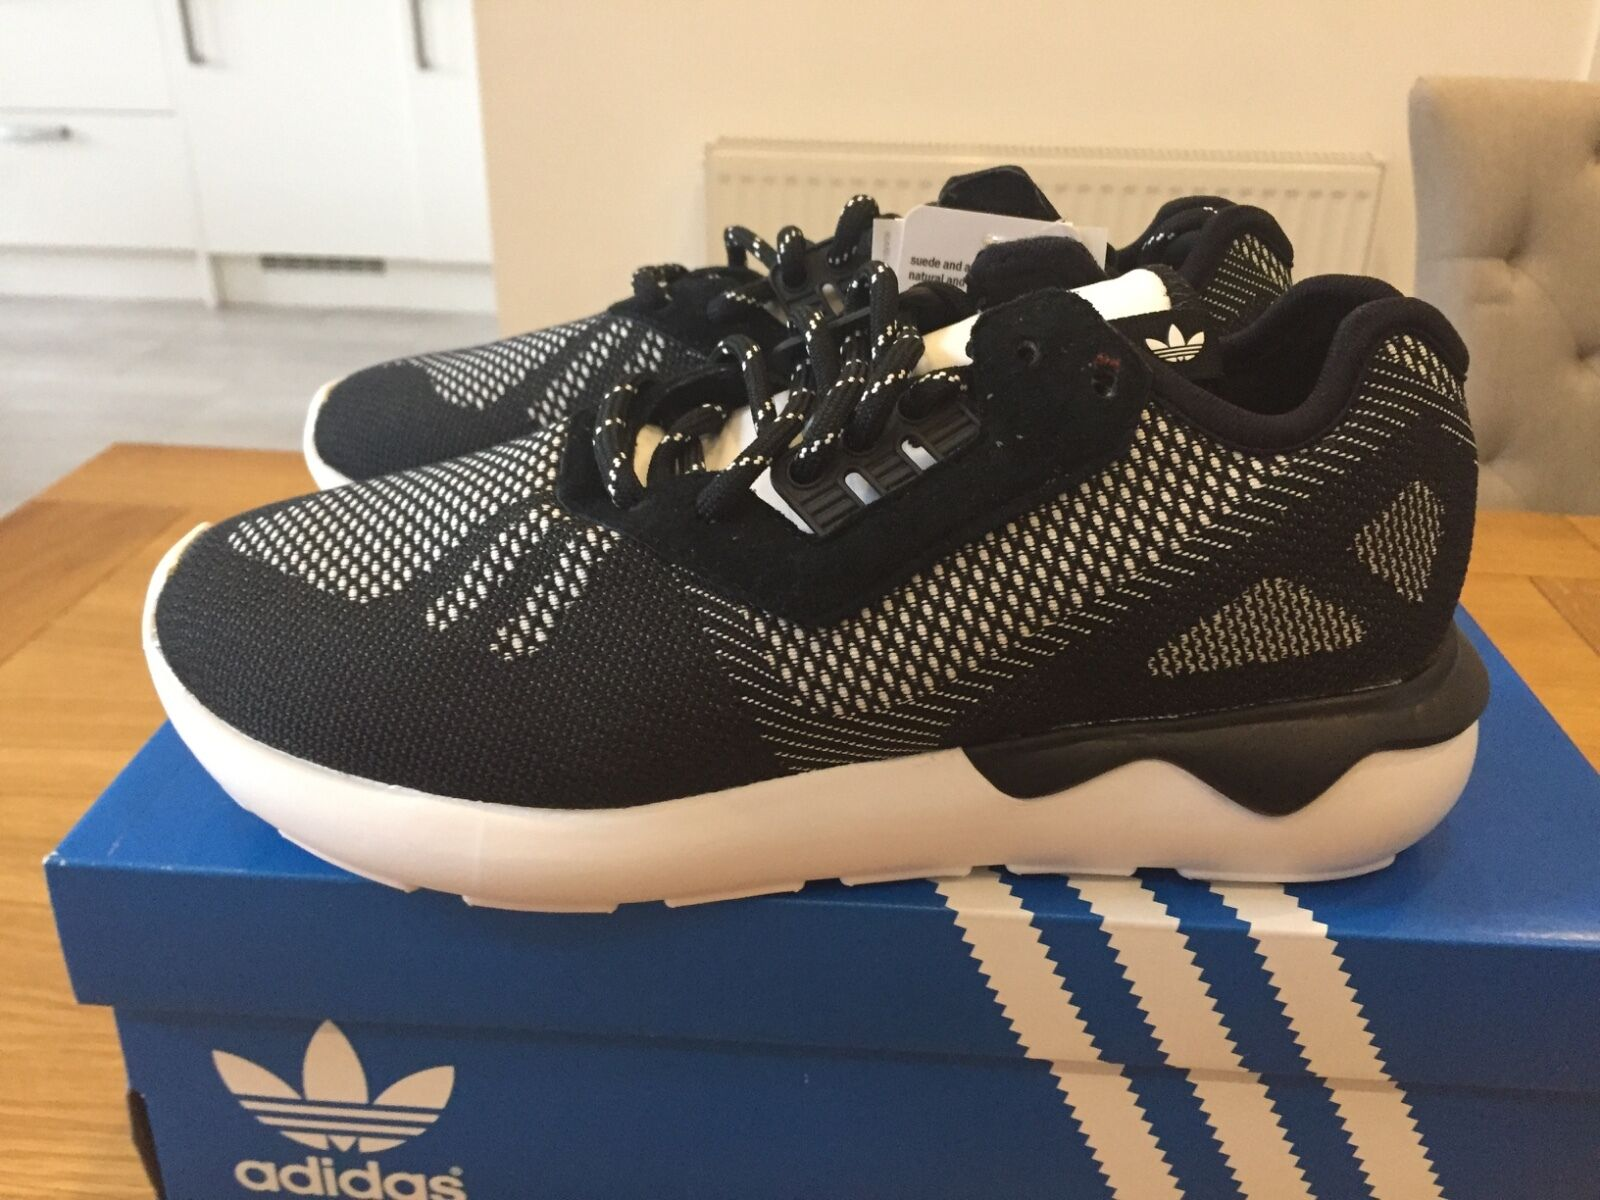 new in box Adidas Tubular Runner Weave in black and white size 6 /3 Casual wild